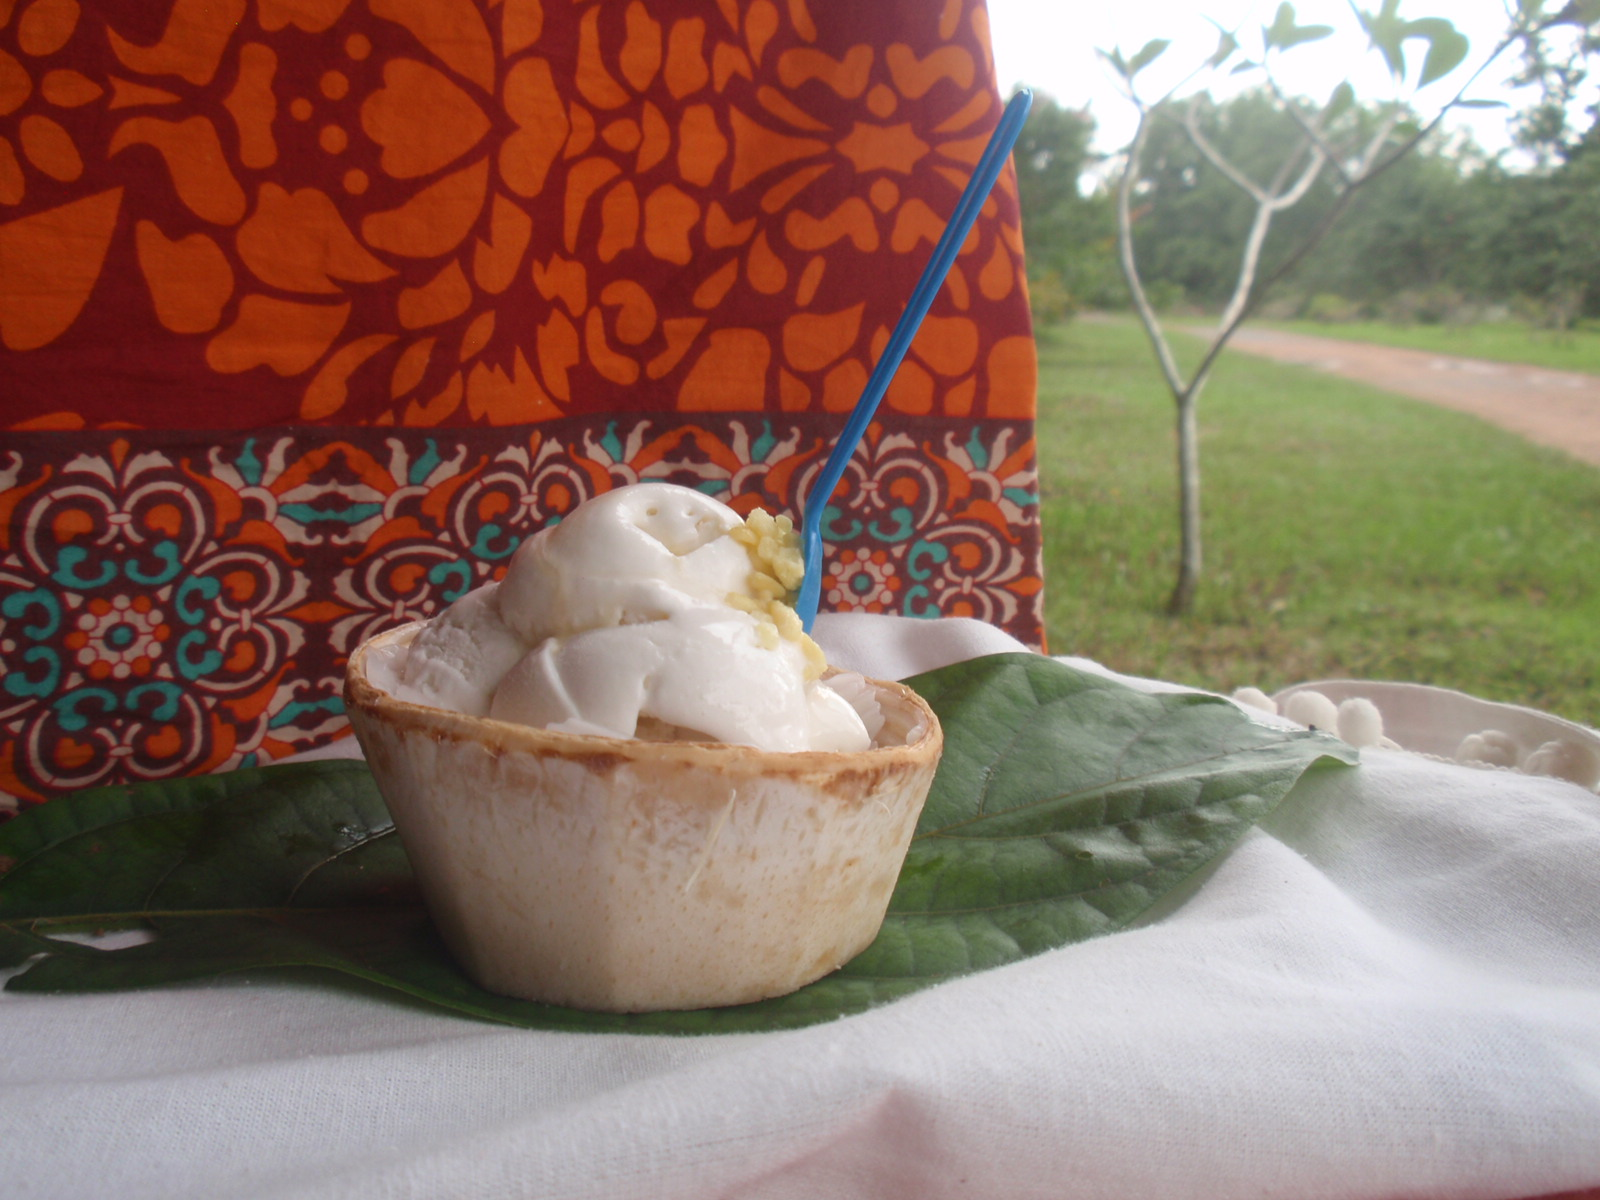 Coconut icecream